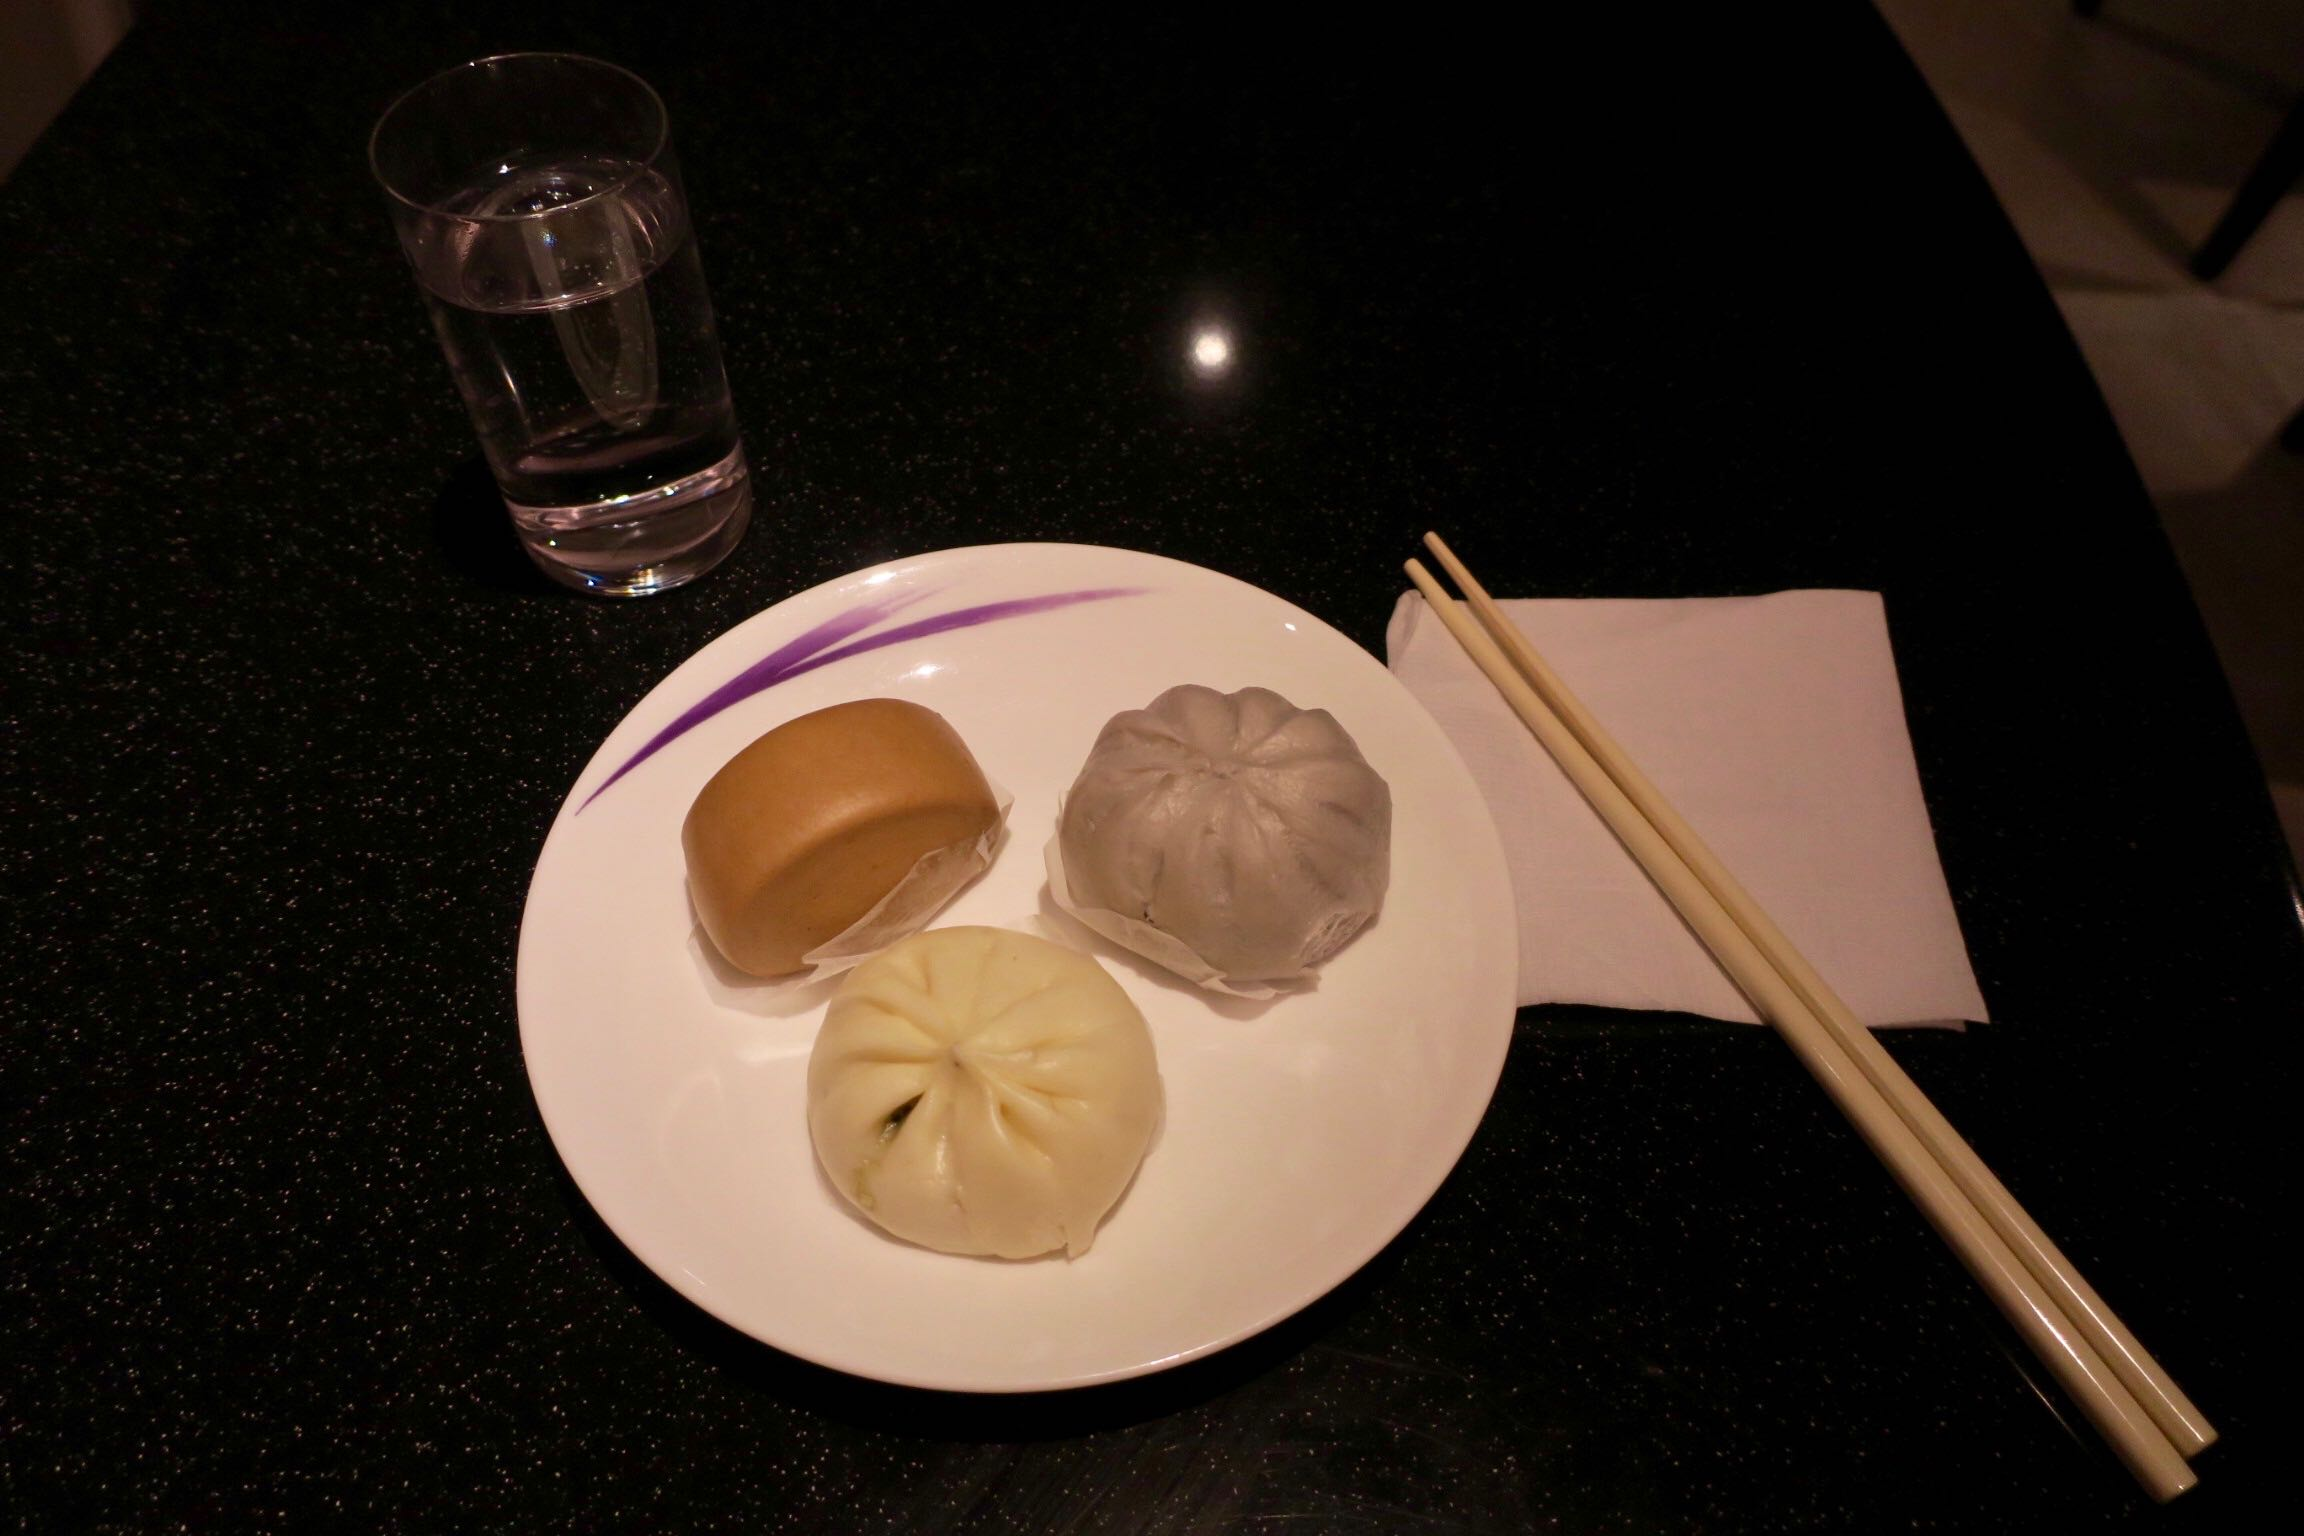 China Airlines Lounge food